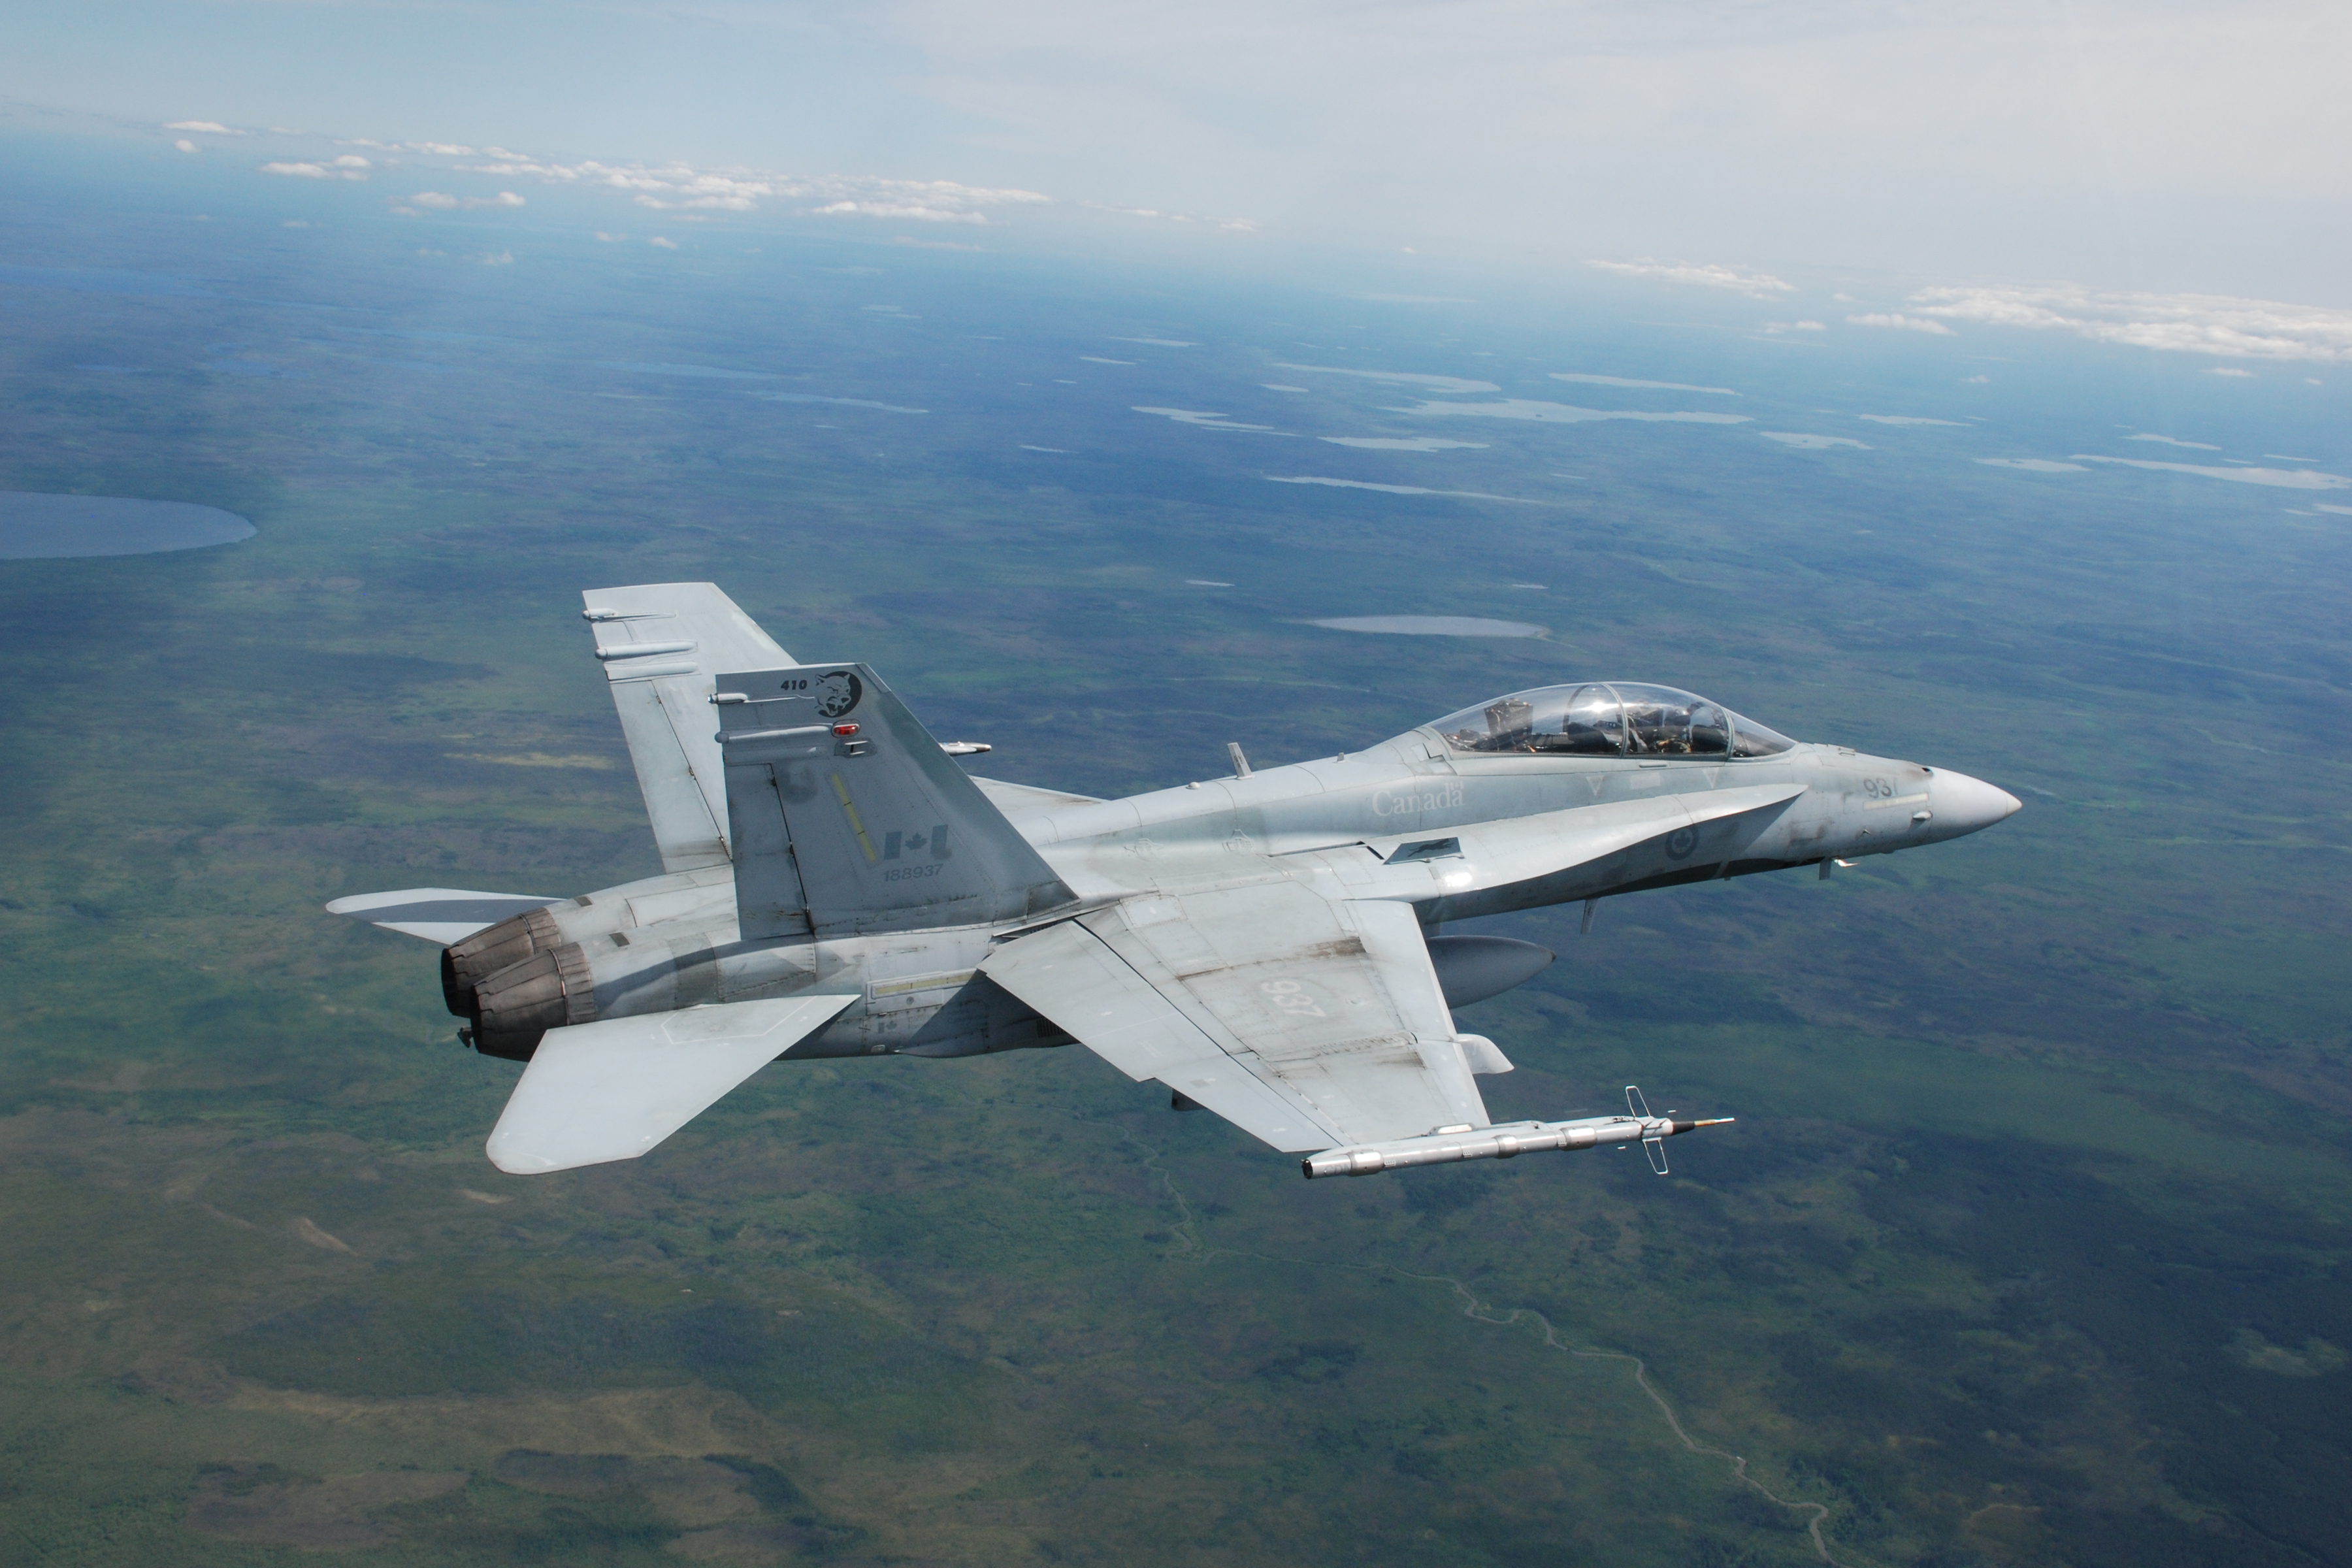 Aircraft F-18 hornet HD Wallpaper